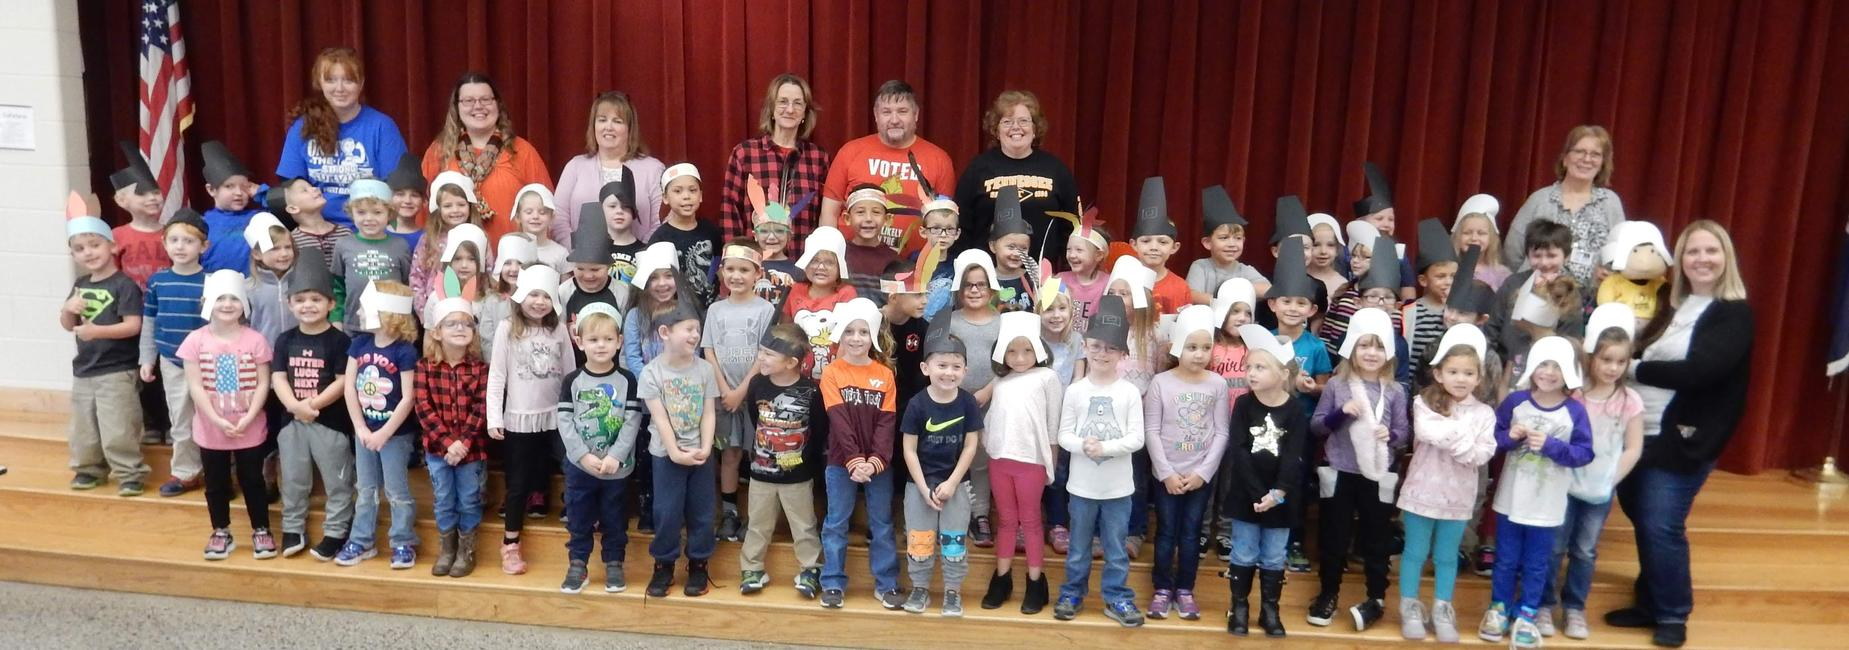 Kindergarten students dressed as pilgrims and native Americans for an early Thanksgiving feast